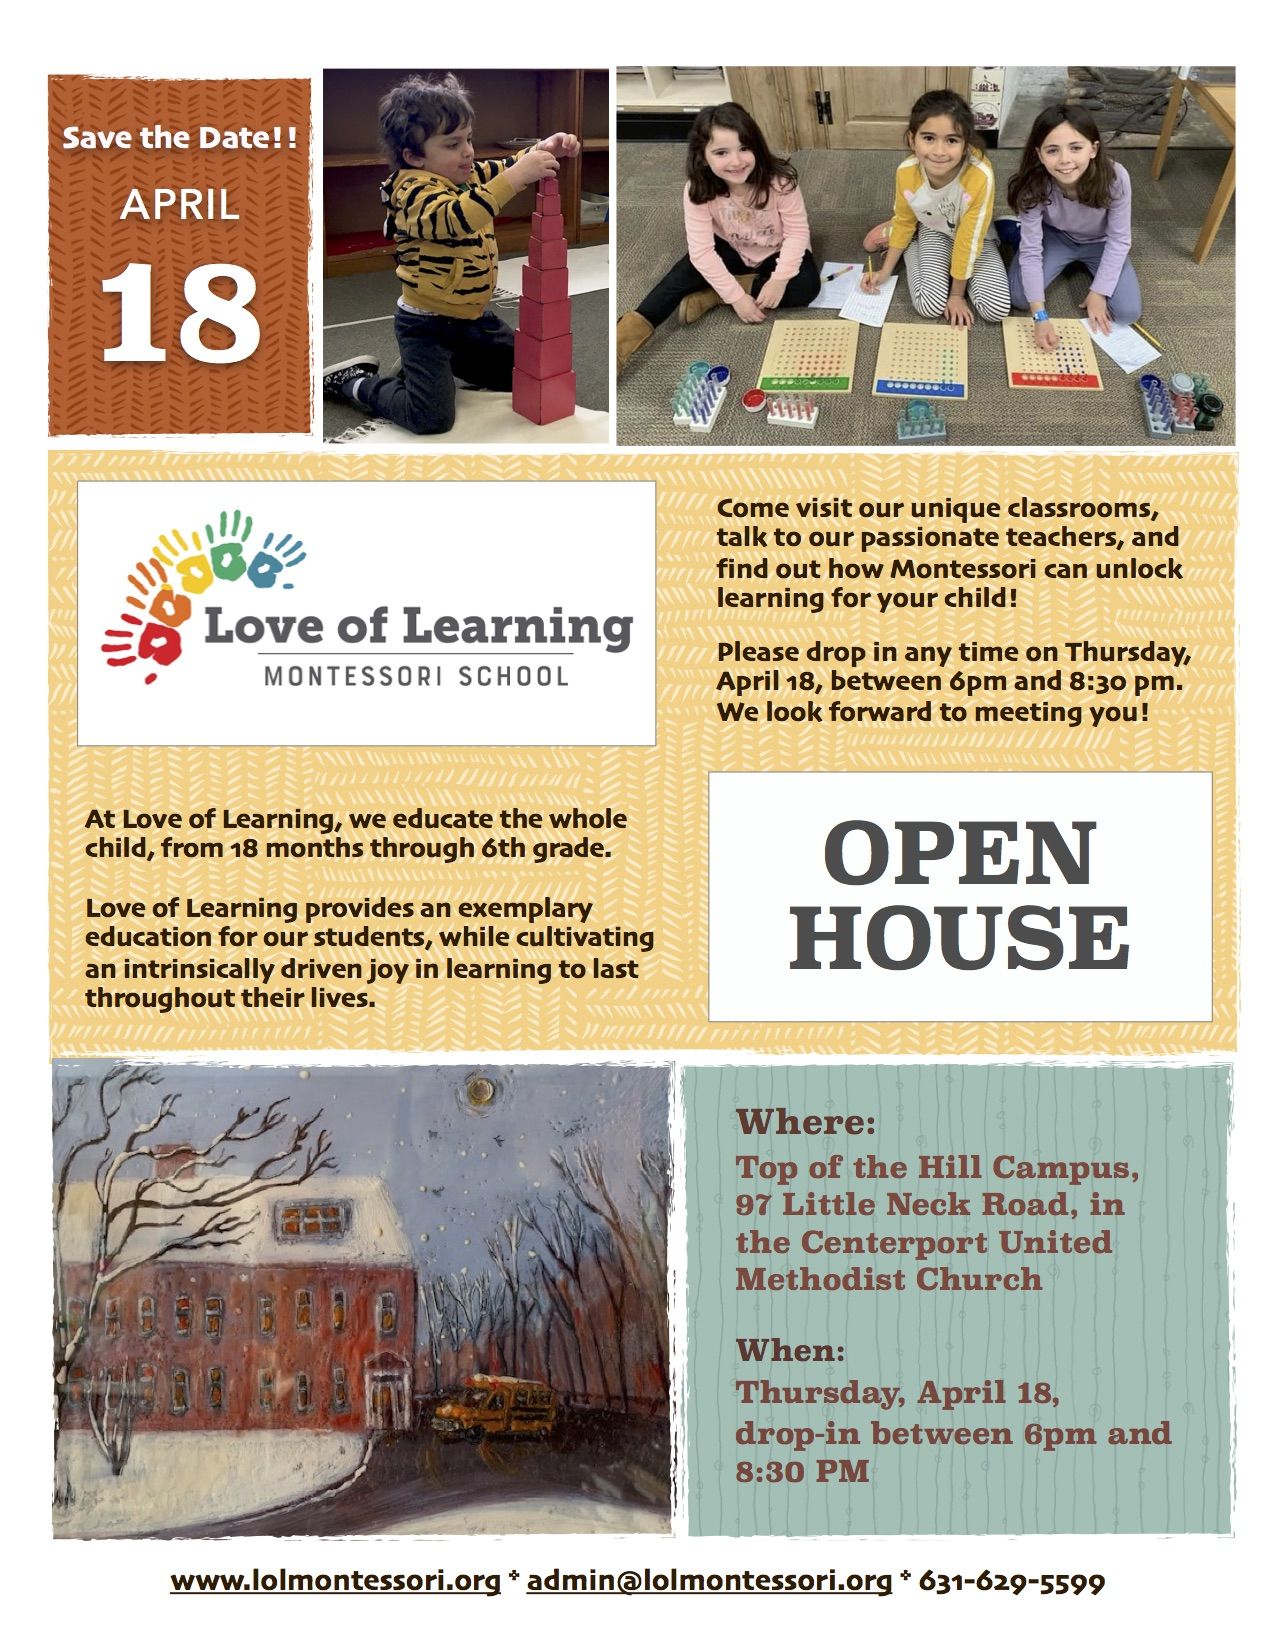 Open House Flyer-2.jpg